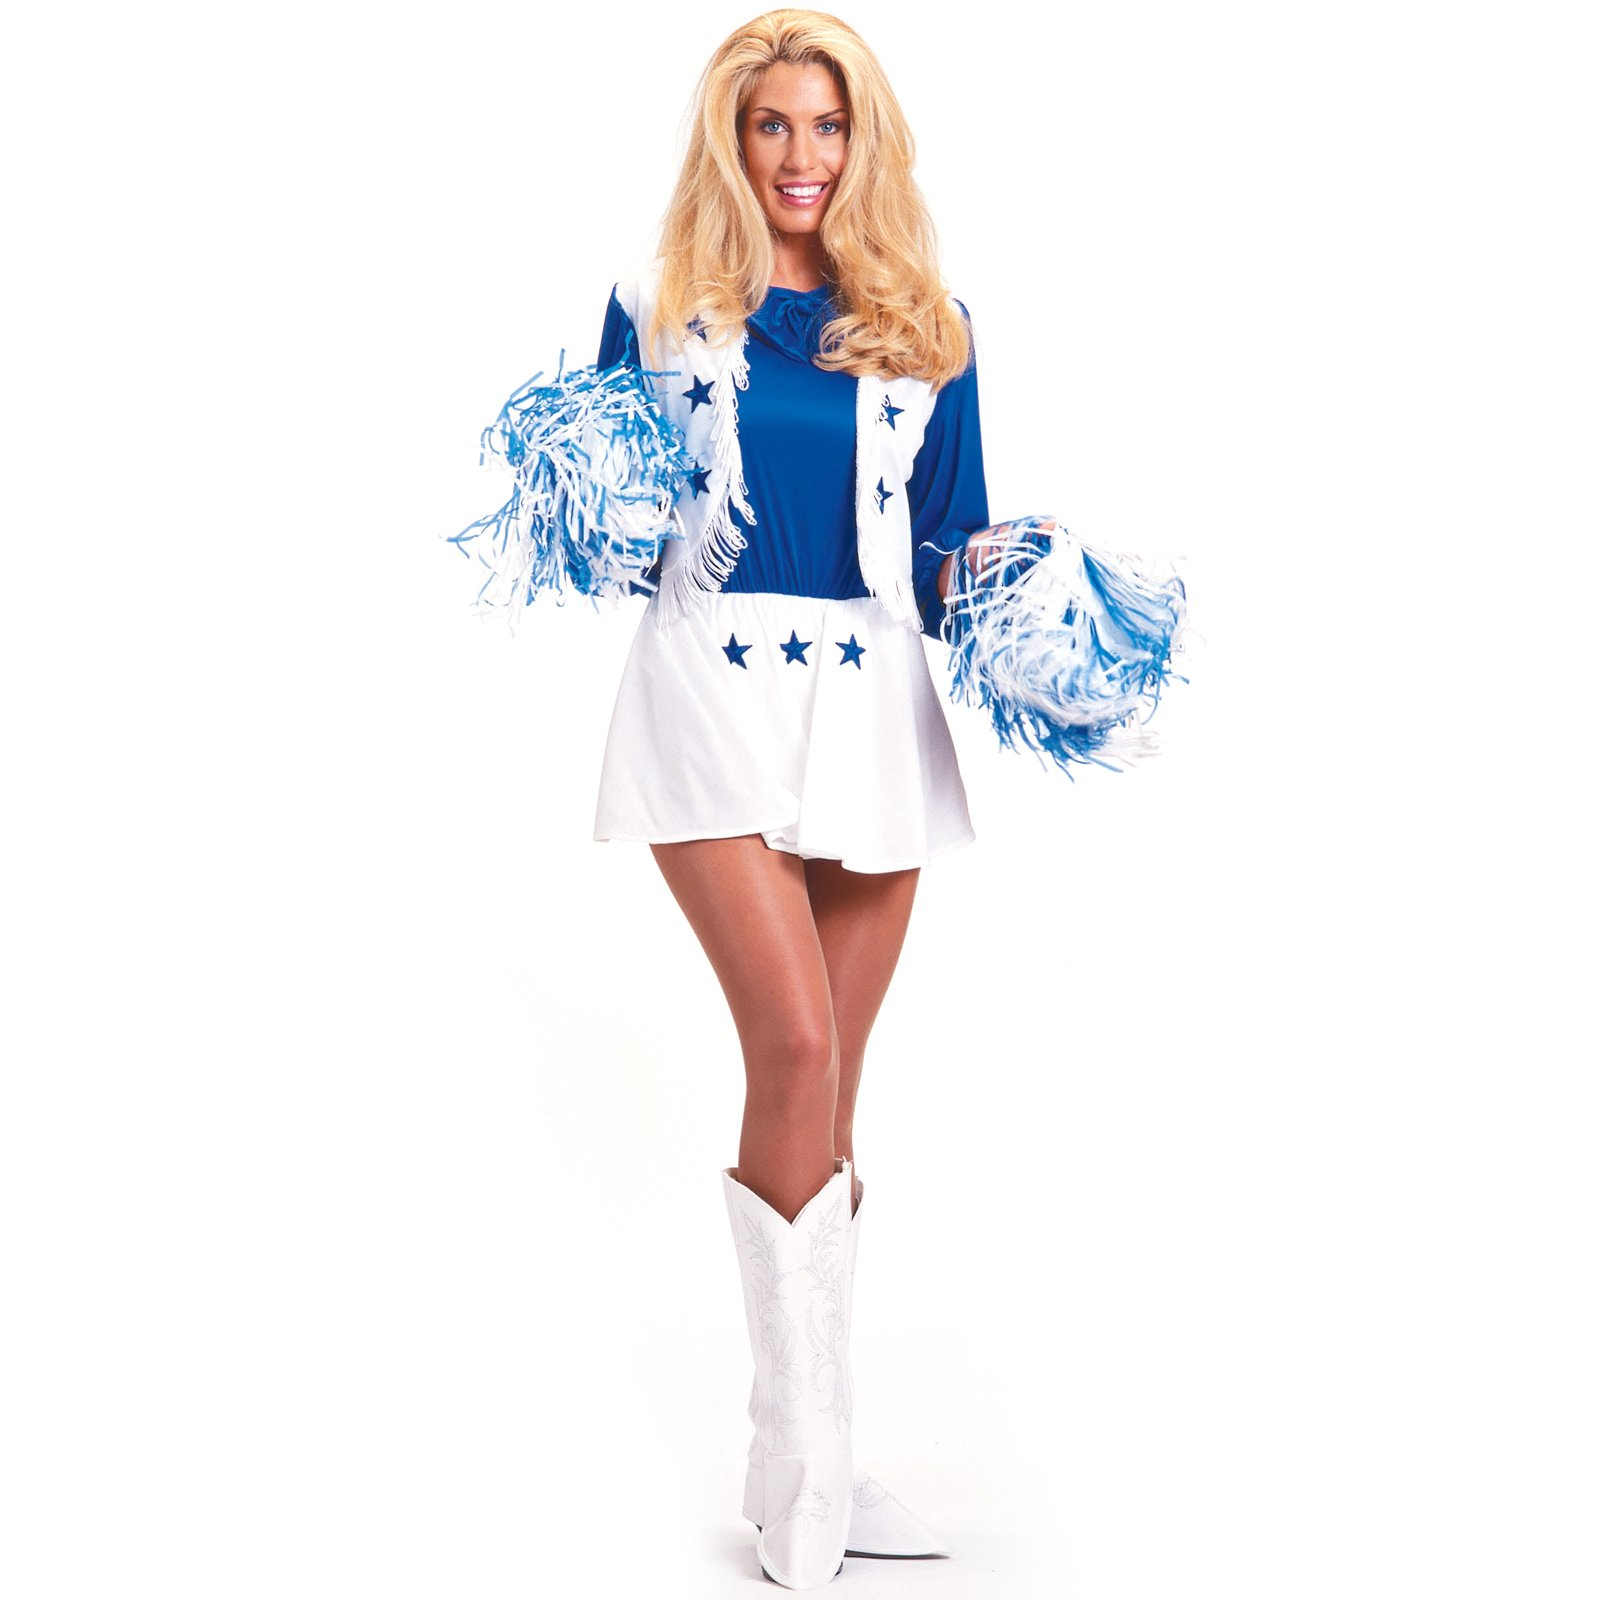 1970s Dallas Cowboys Cheerleaders http://www.aboutcostume.com/dallas-cowboys-cheerleader-adult-p-5262.html